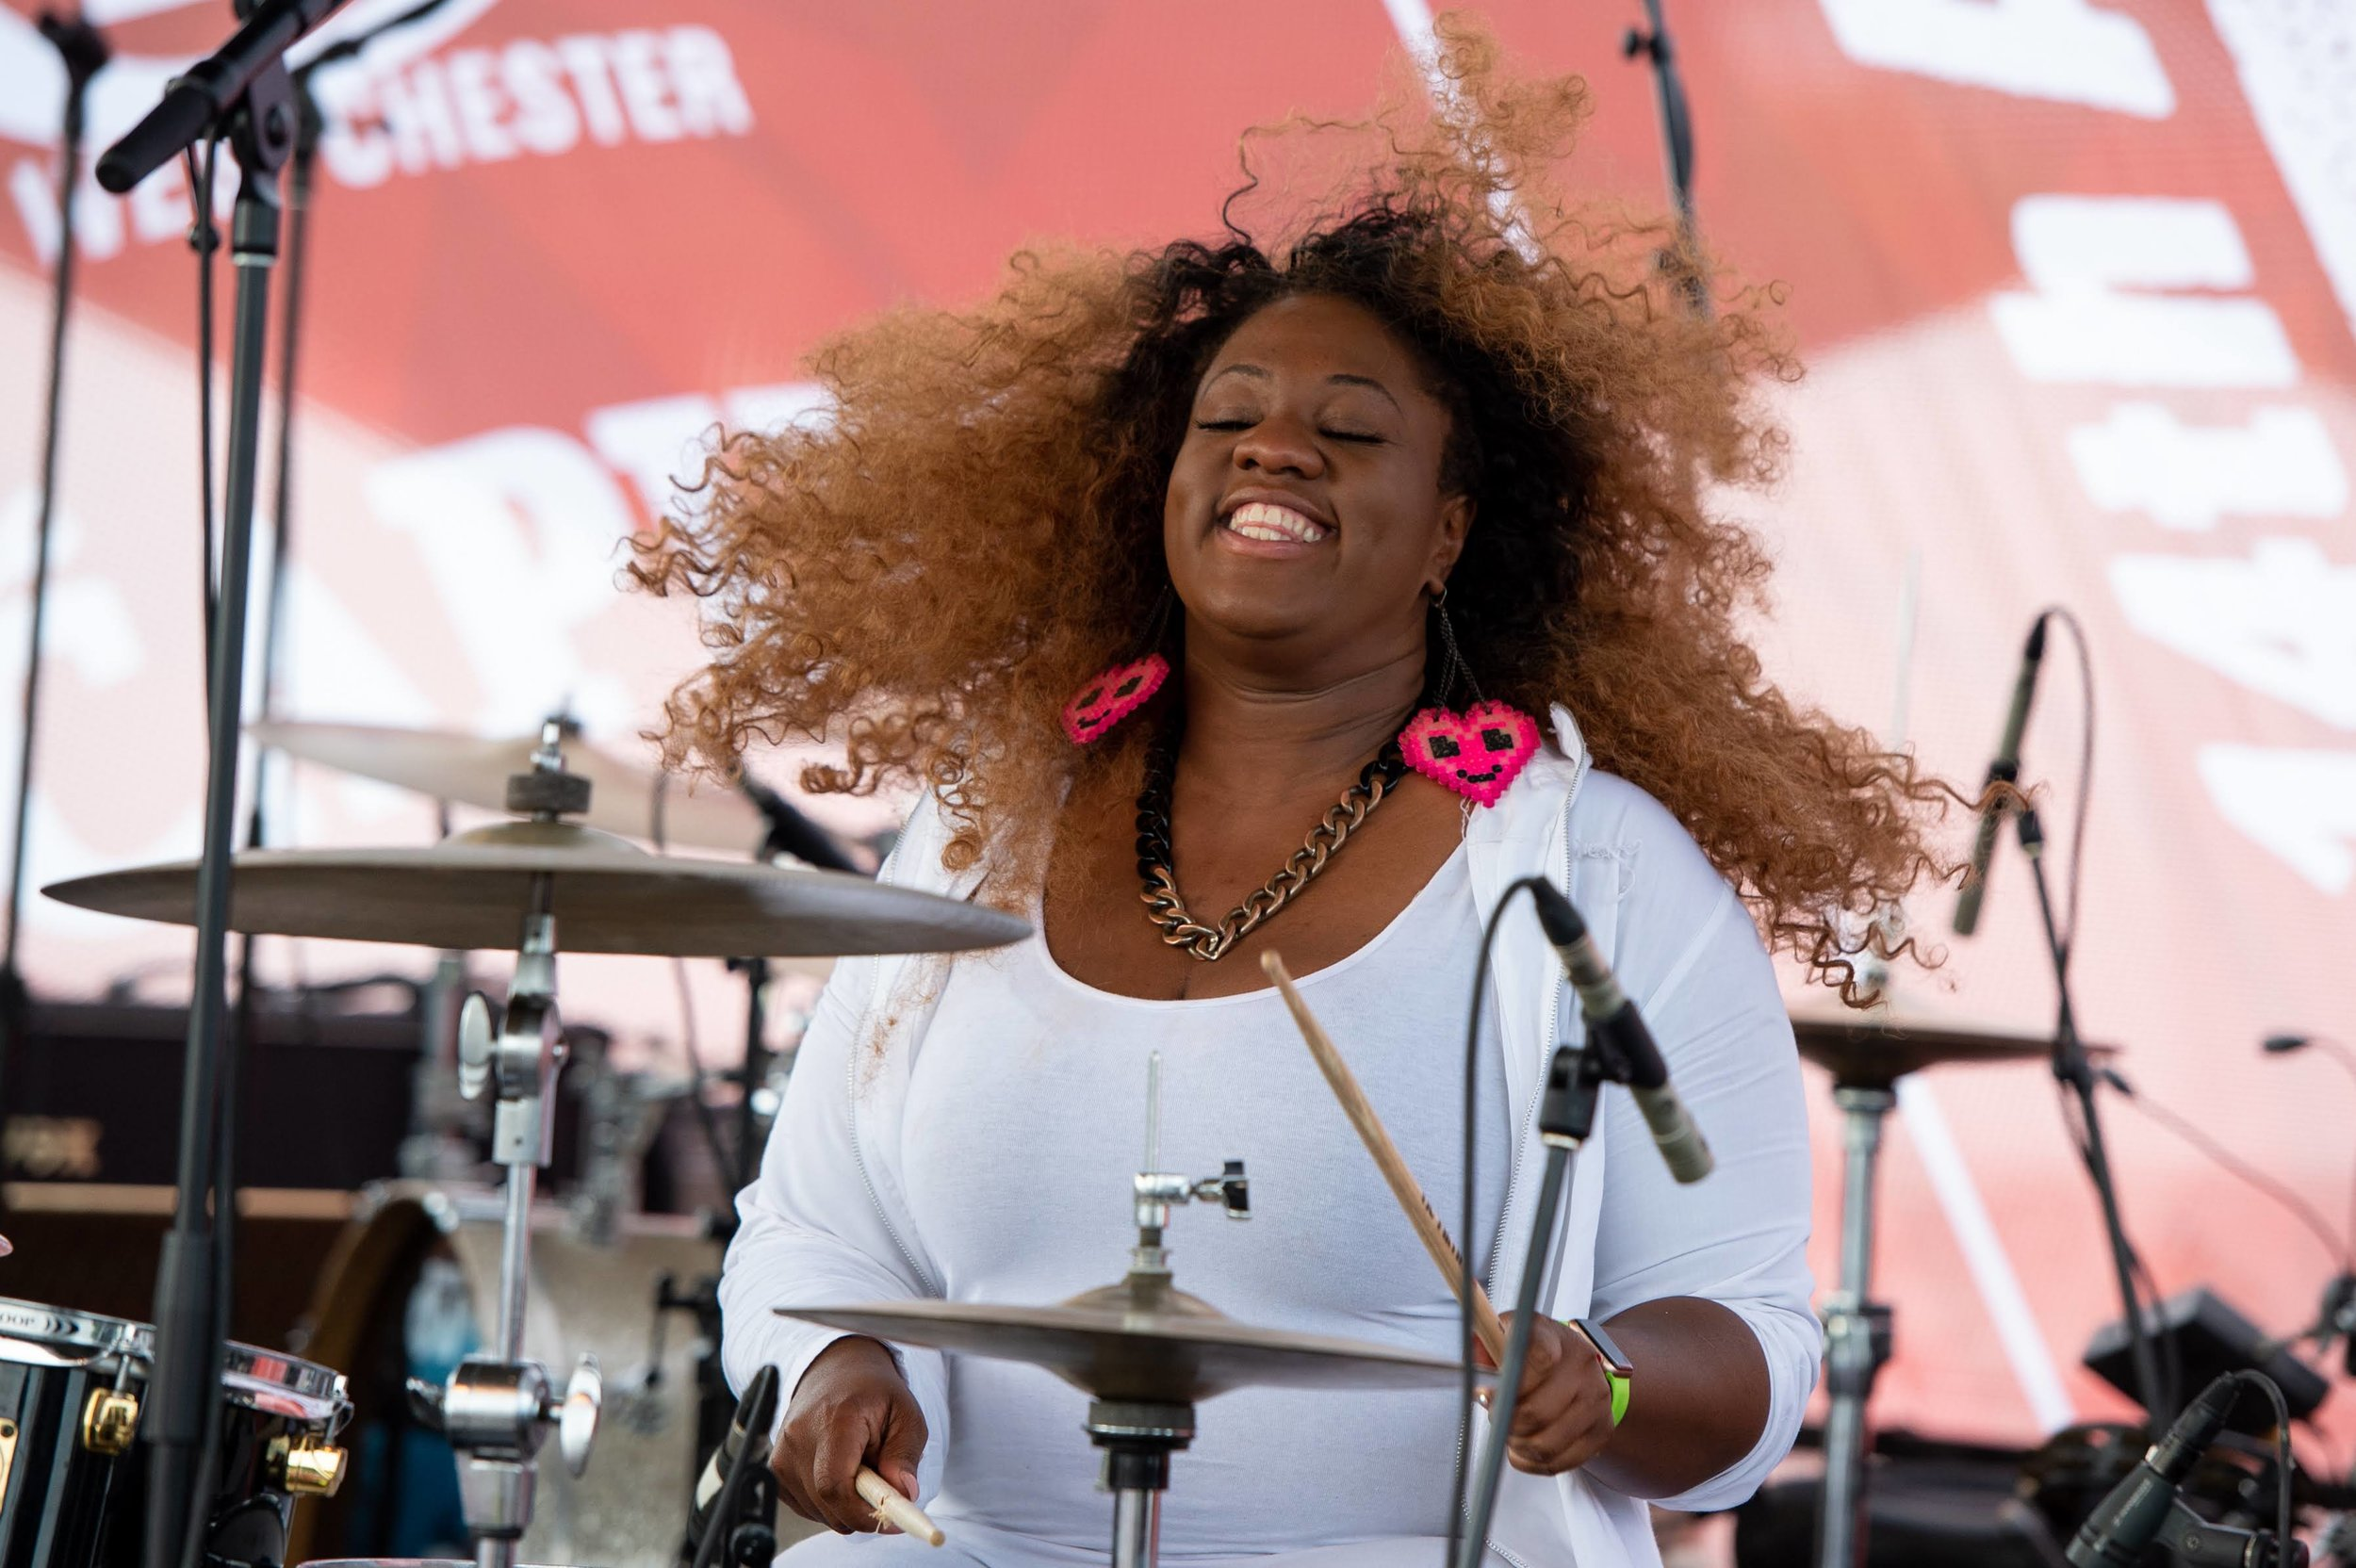 Lenesha Randolph taking on the drums in her big brother Robert's Family Band © 2018 Lynda Shenkman